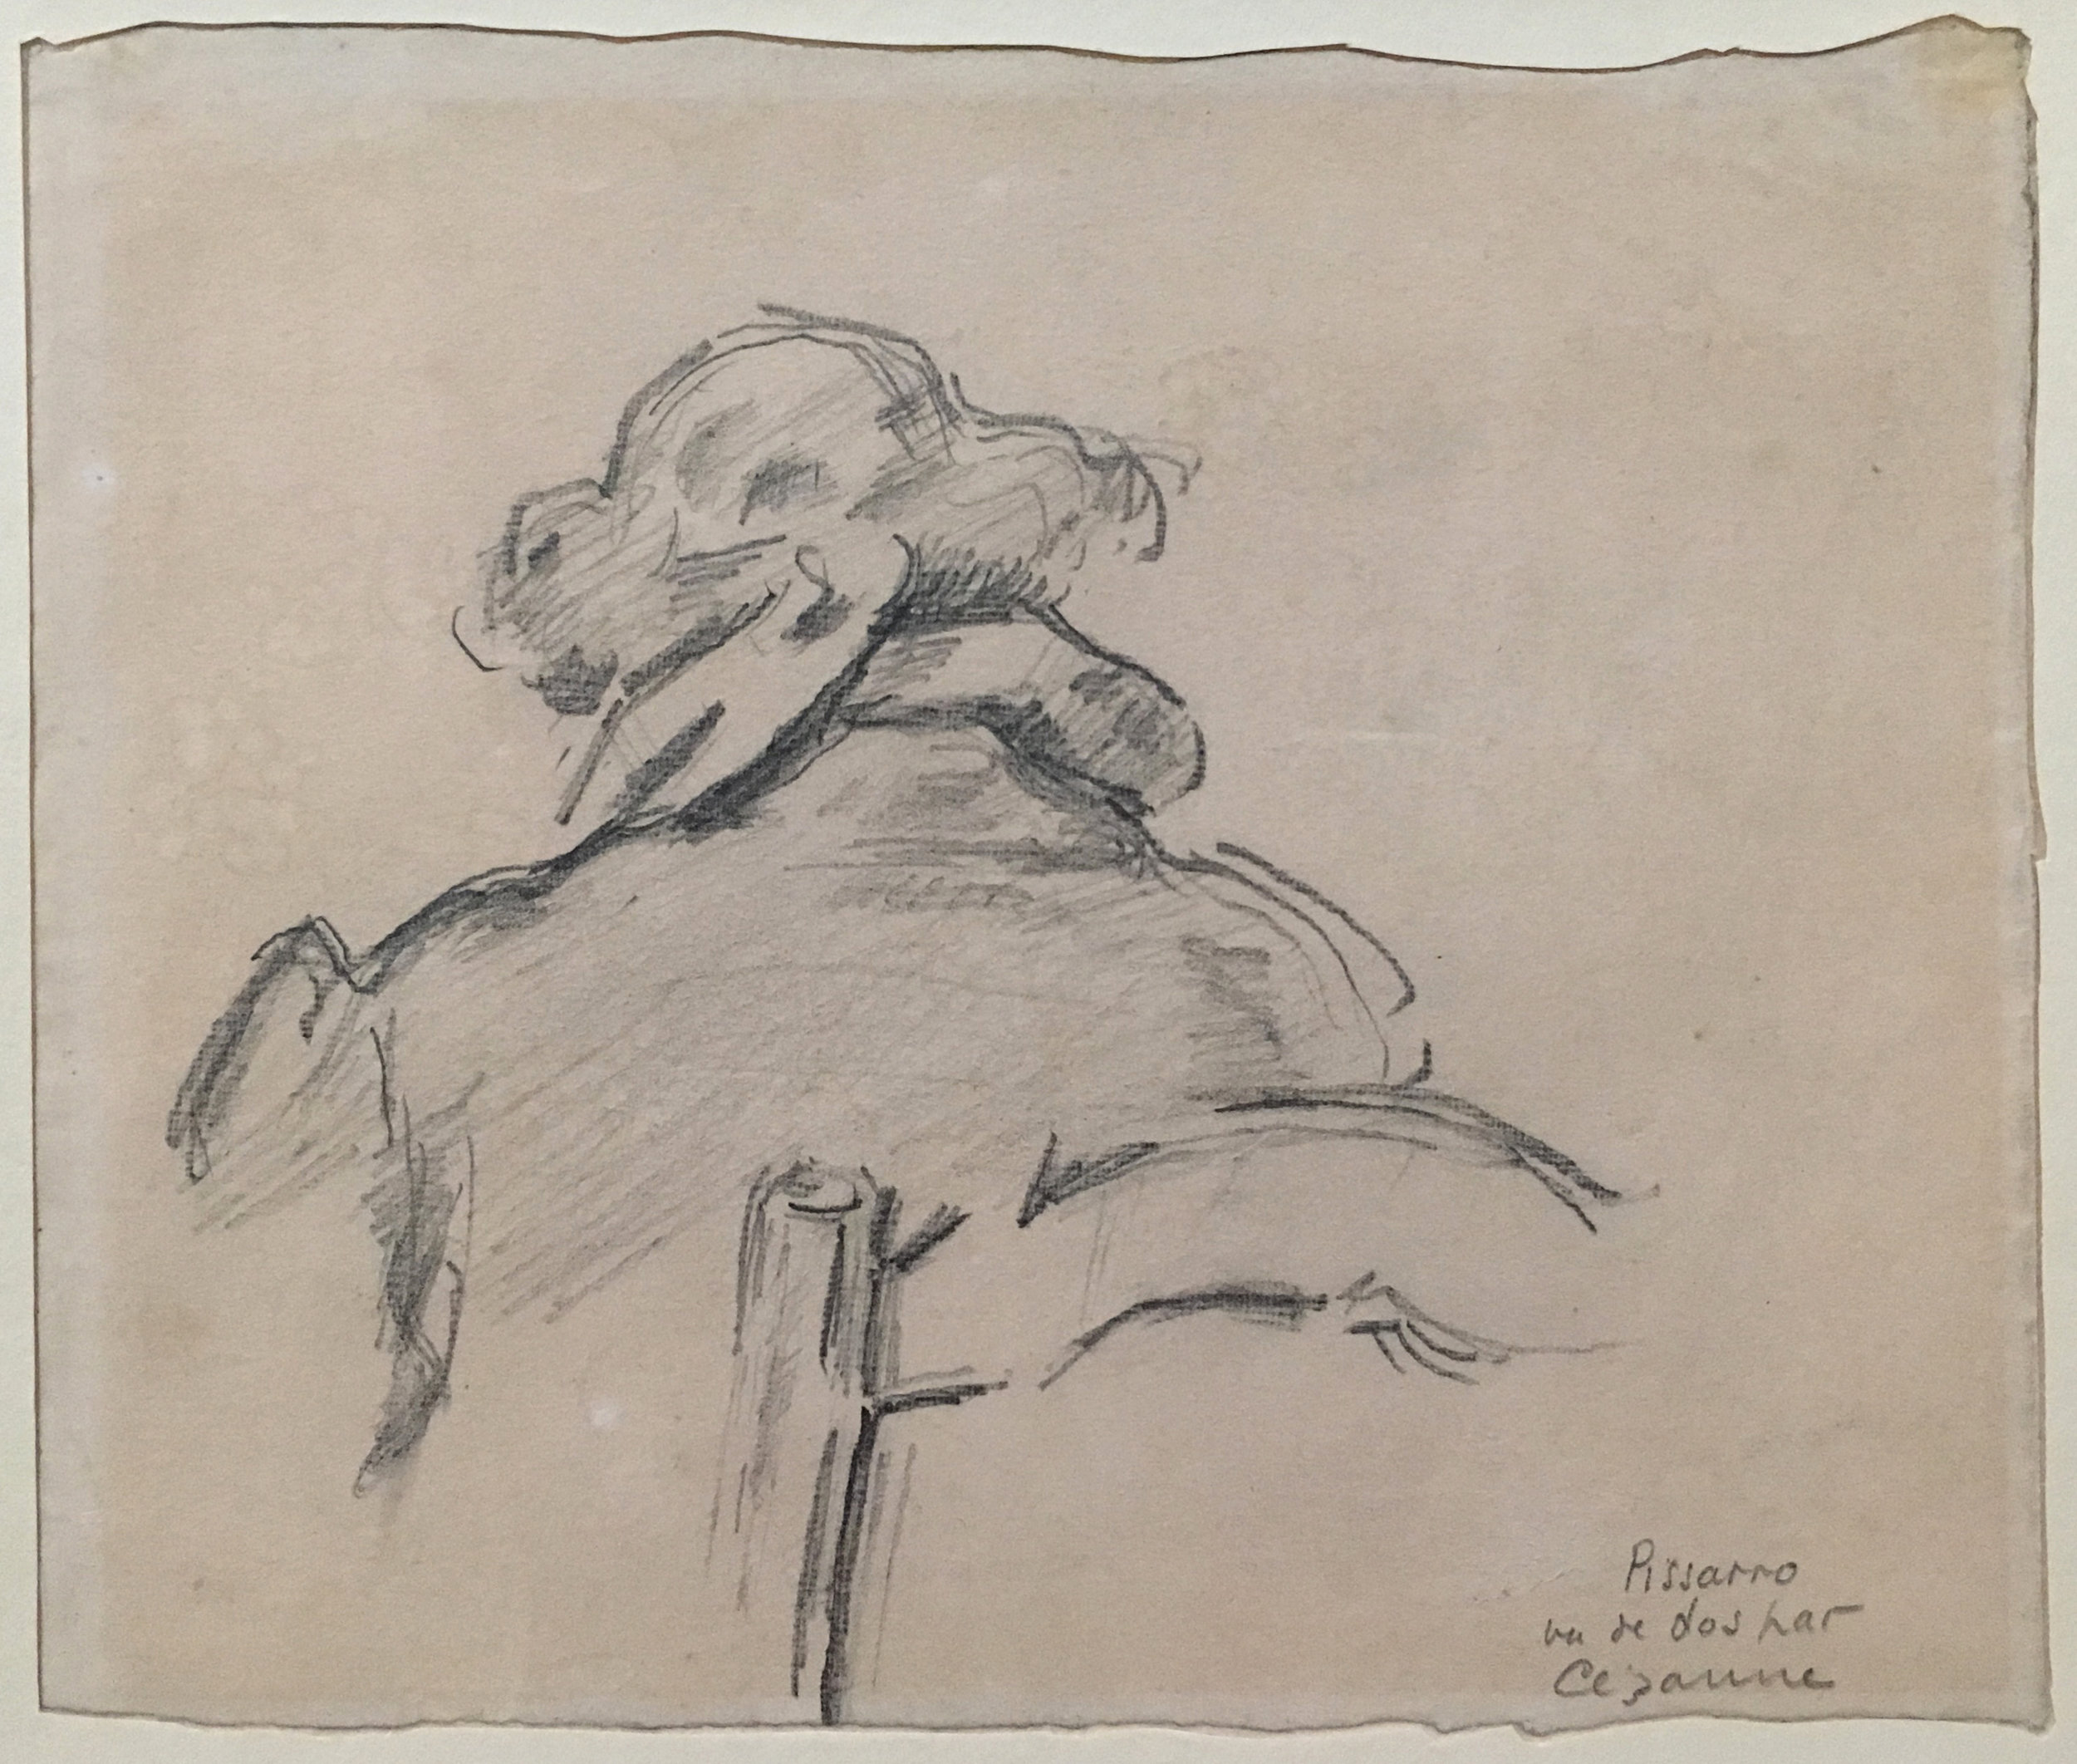 Camille Pissarro, seen from behind.  P. Cézanne, 1874-77, pencil on paper, Kunstmuseum Basel